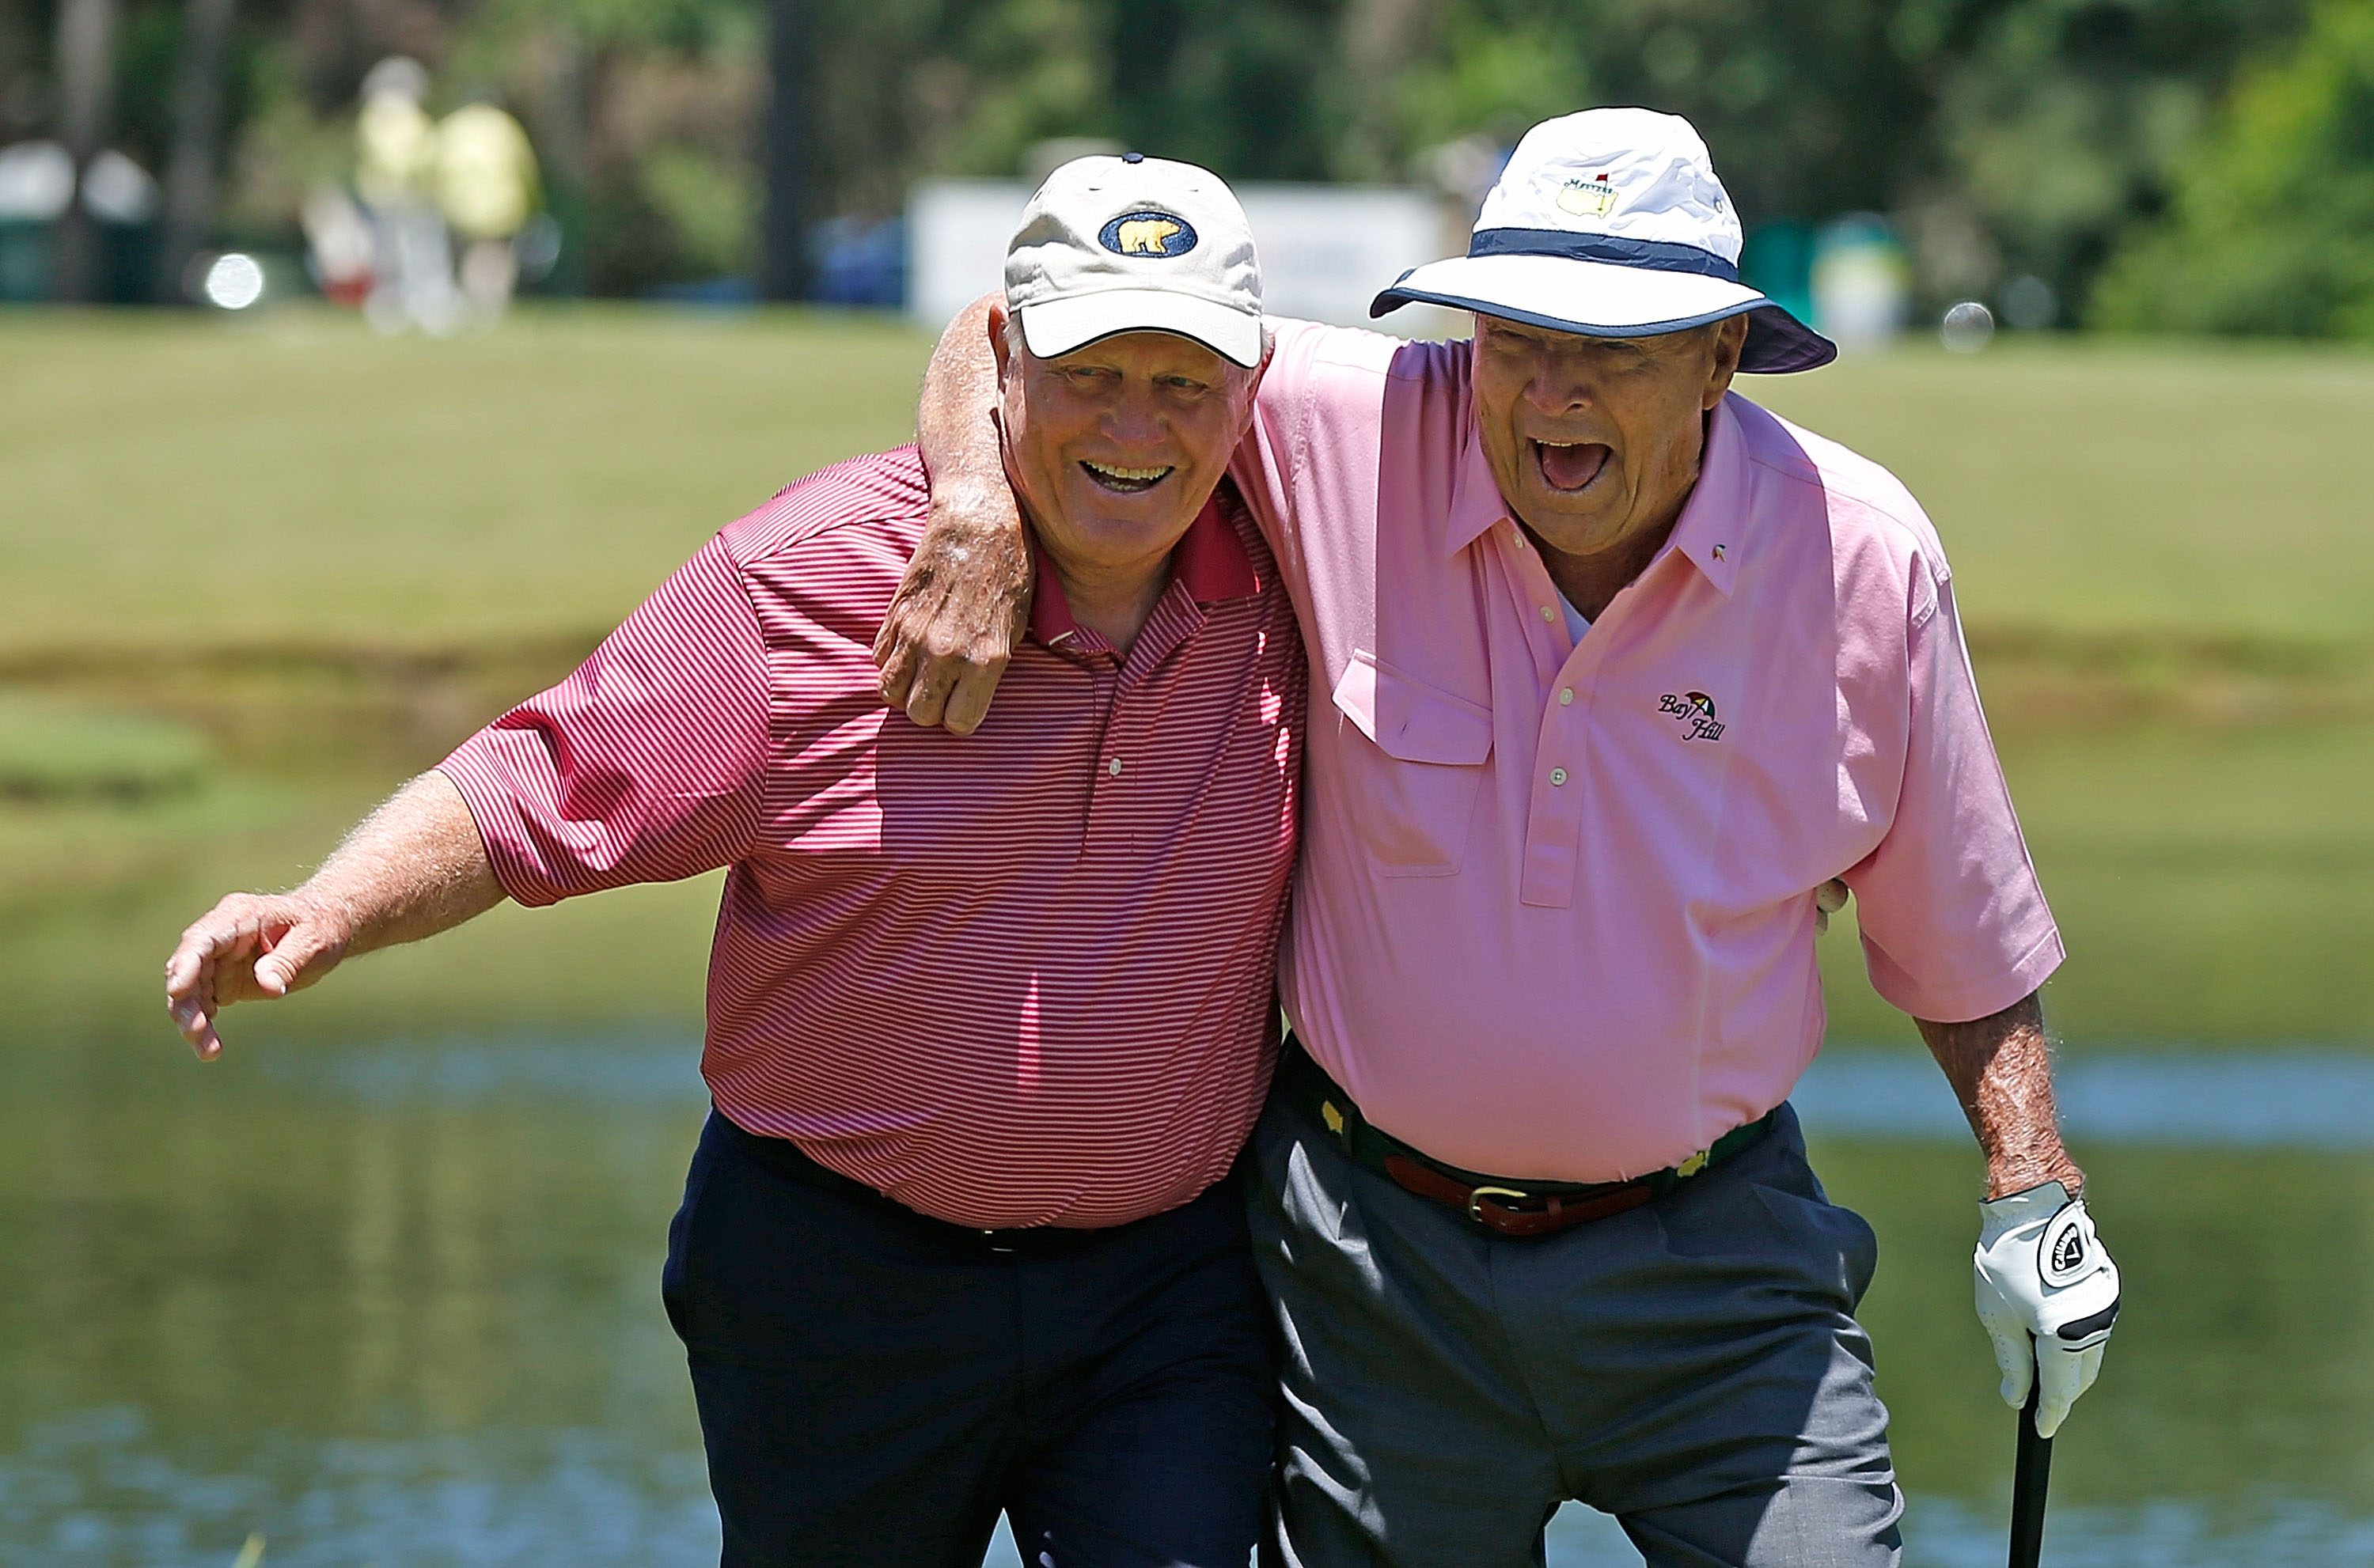 Jack Nicklaus and Arnold Palmer walk to the third green during the Greats of Golf exhibition at the Insperity Championship at the Woodlands Country Club on May 4, 2013 in Woodlands, Texas.